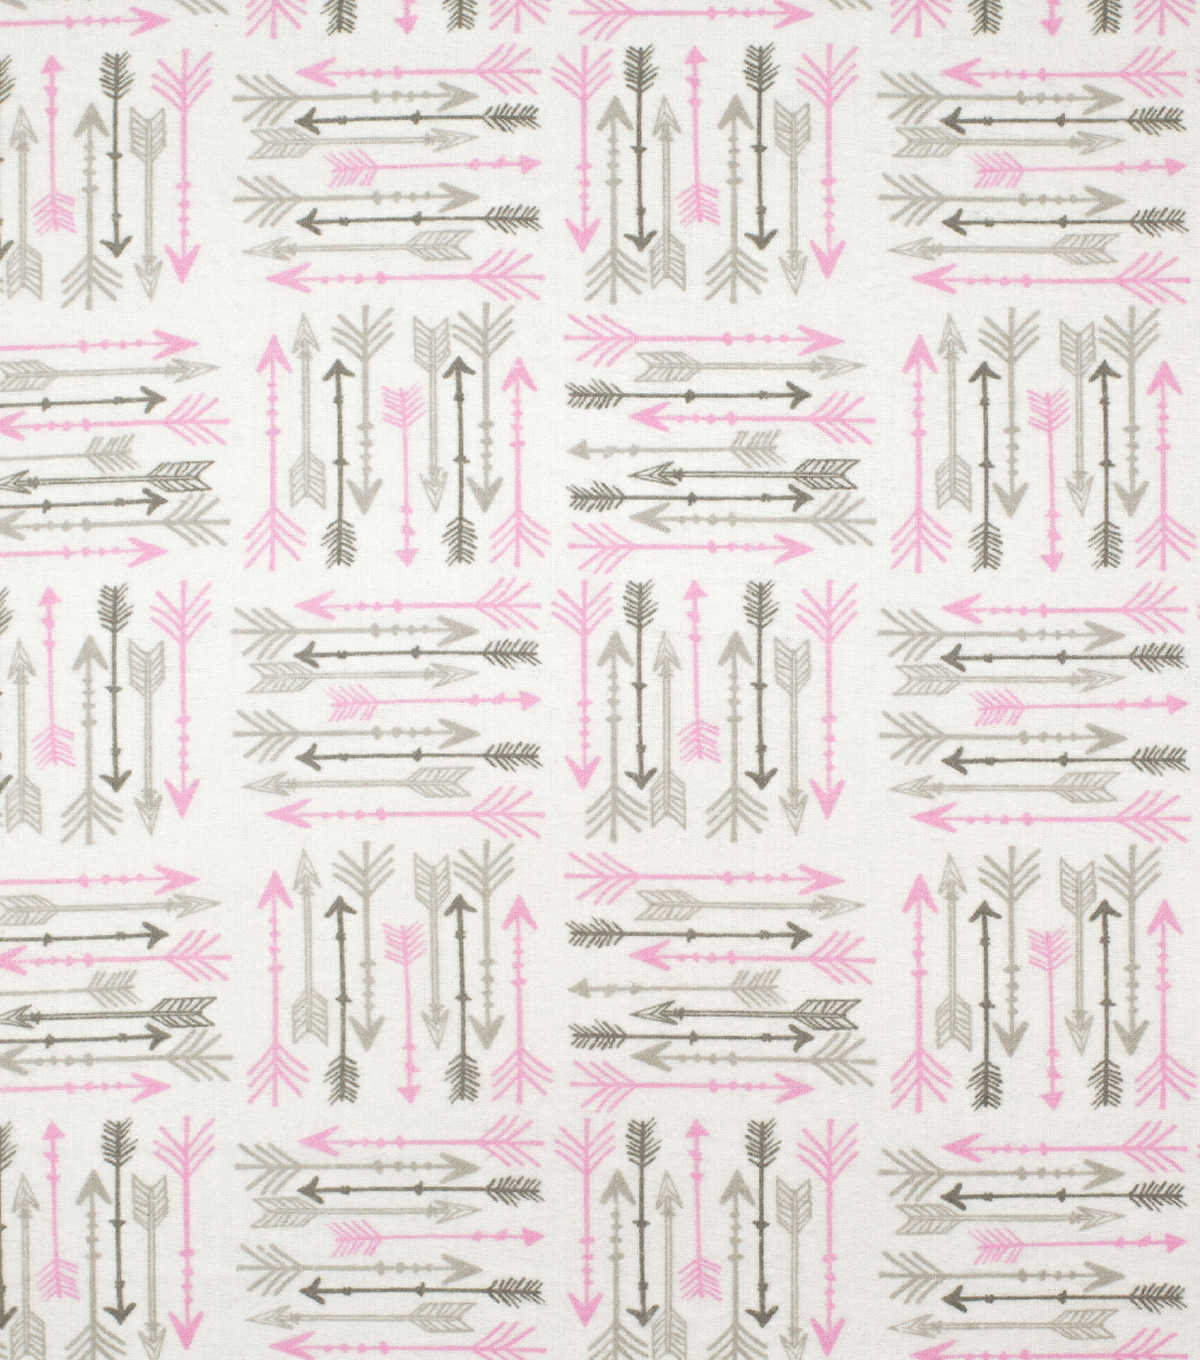 Super Snuggle Flannel Fabric-Pink & Gray Arrows